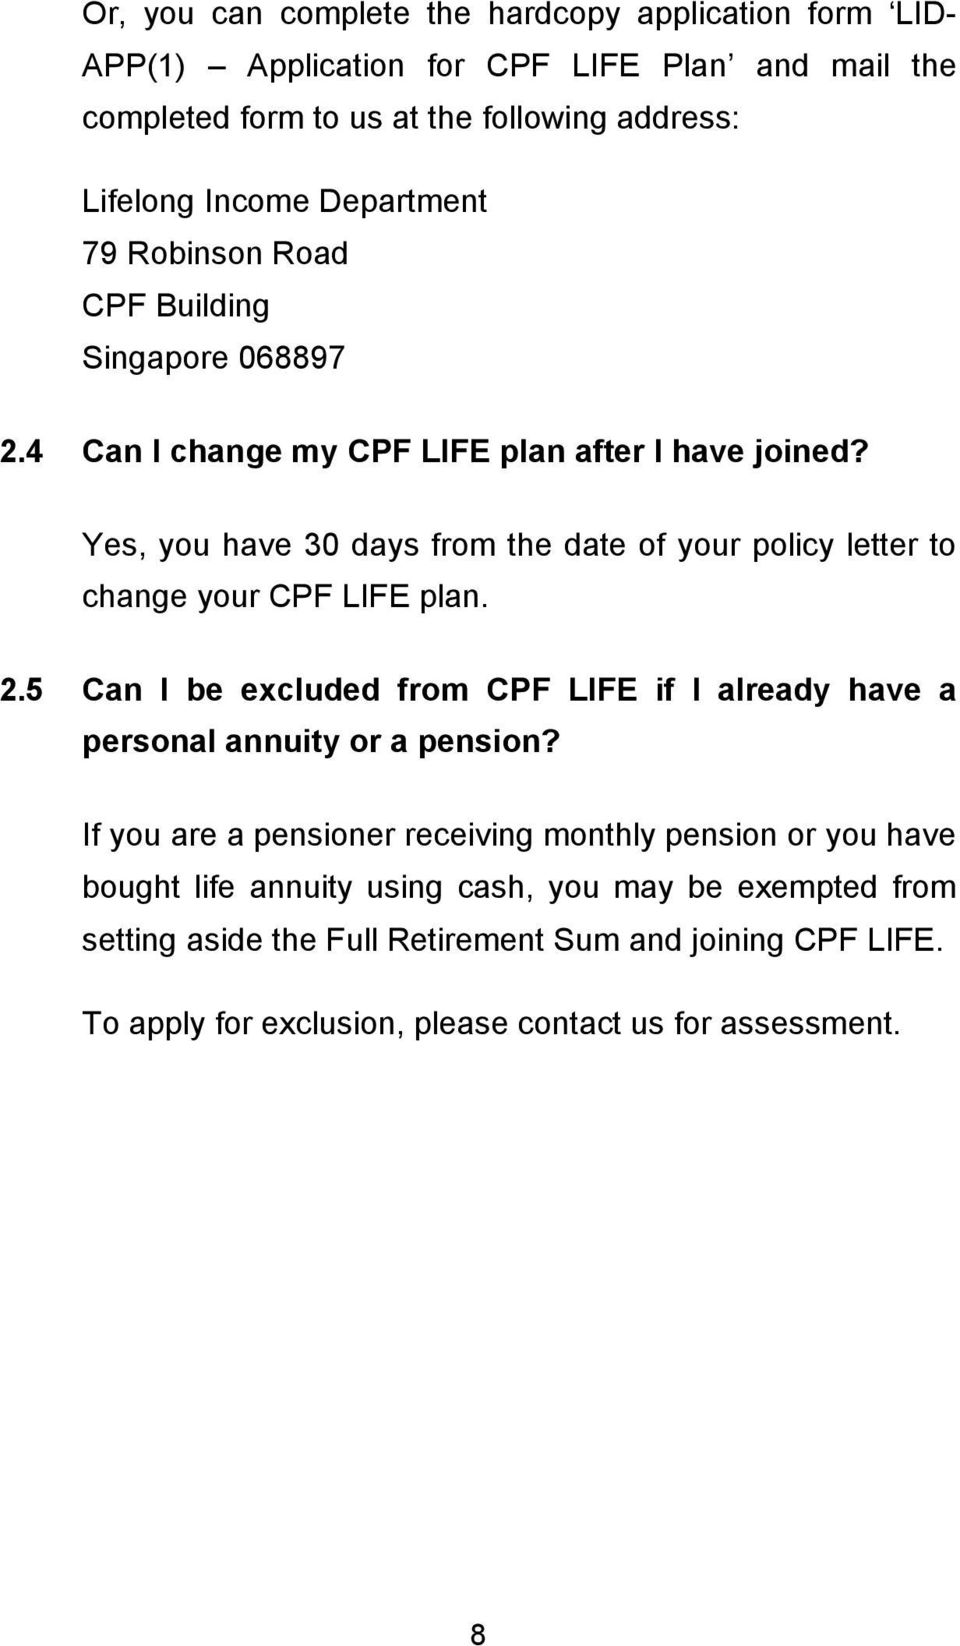 Yes, you have 30 days from the date of your policy letter to change your CPF LIFE plan. 2.5 Can I be excluded from CPF LIFE if I already have a personal annuity or a pension?